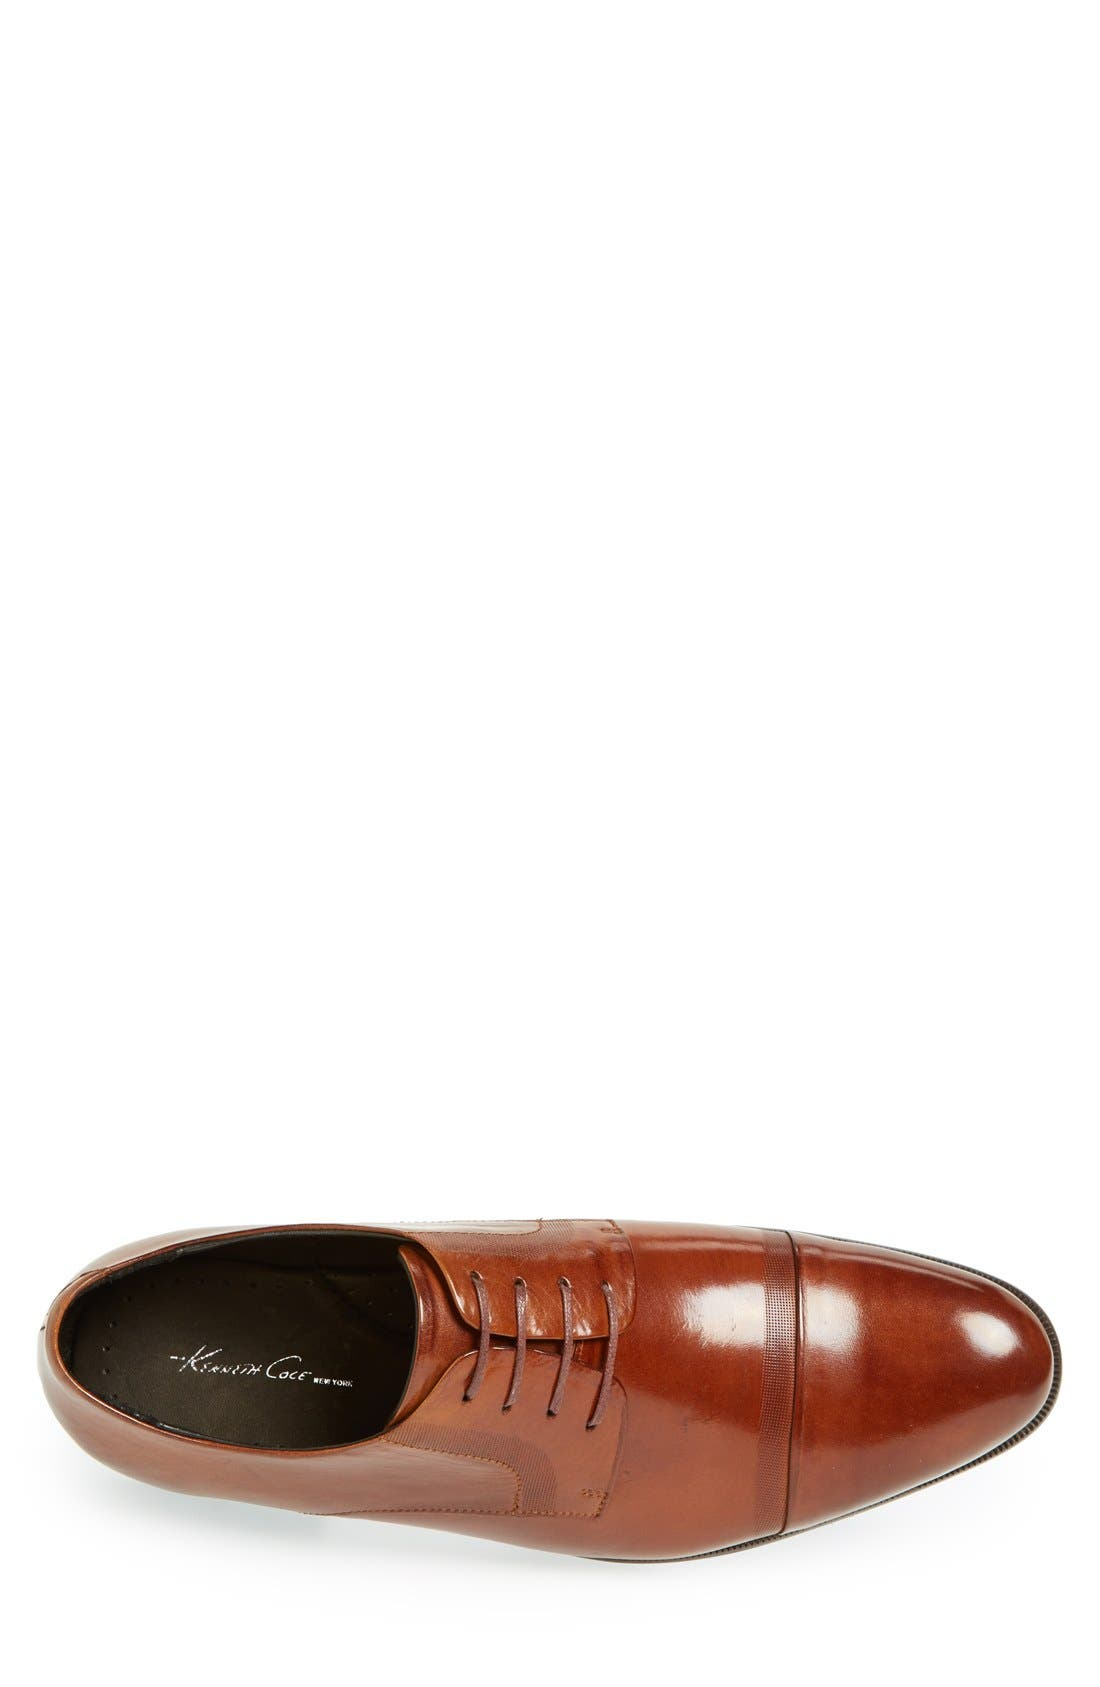 Alternate Image 3  - Kenneth Cole New York 'Chief Of Staff' Cap Toe Derby (Men)